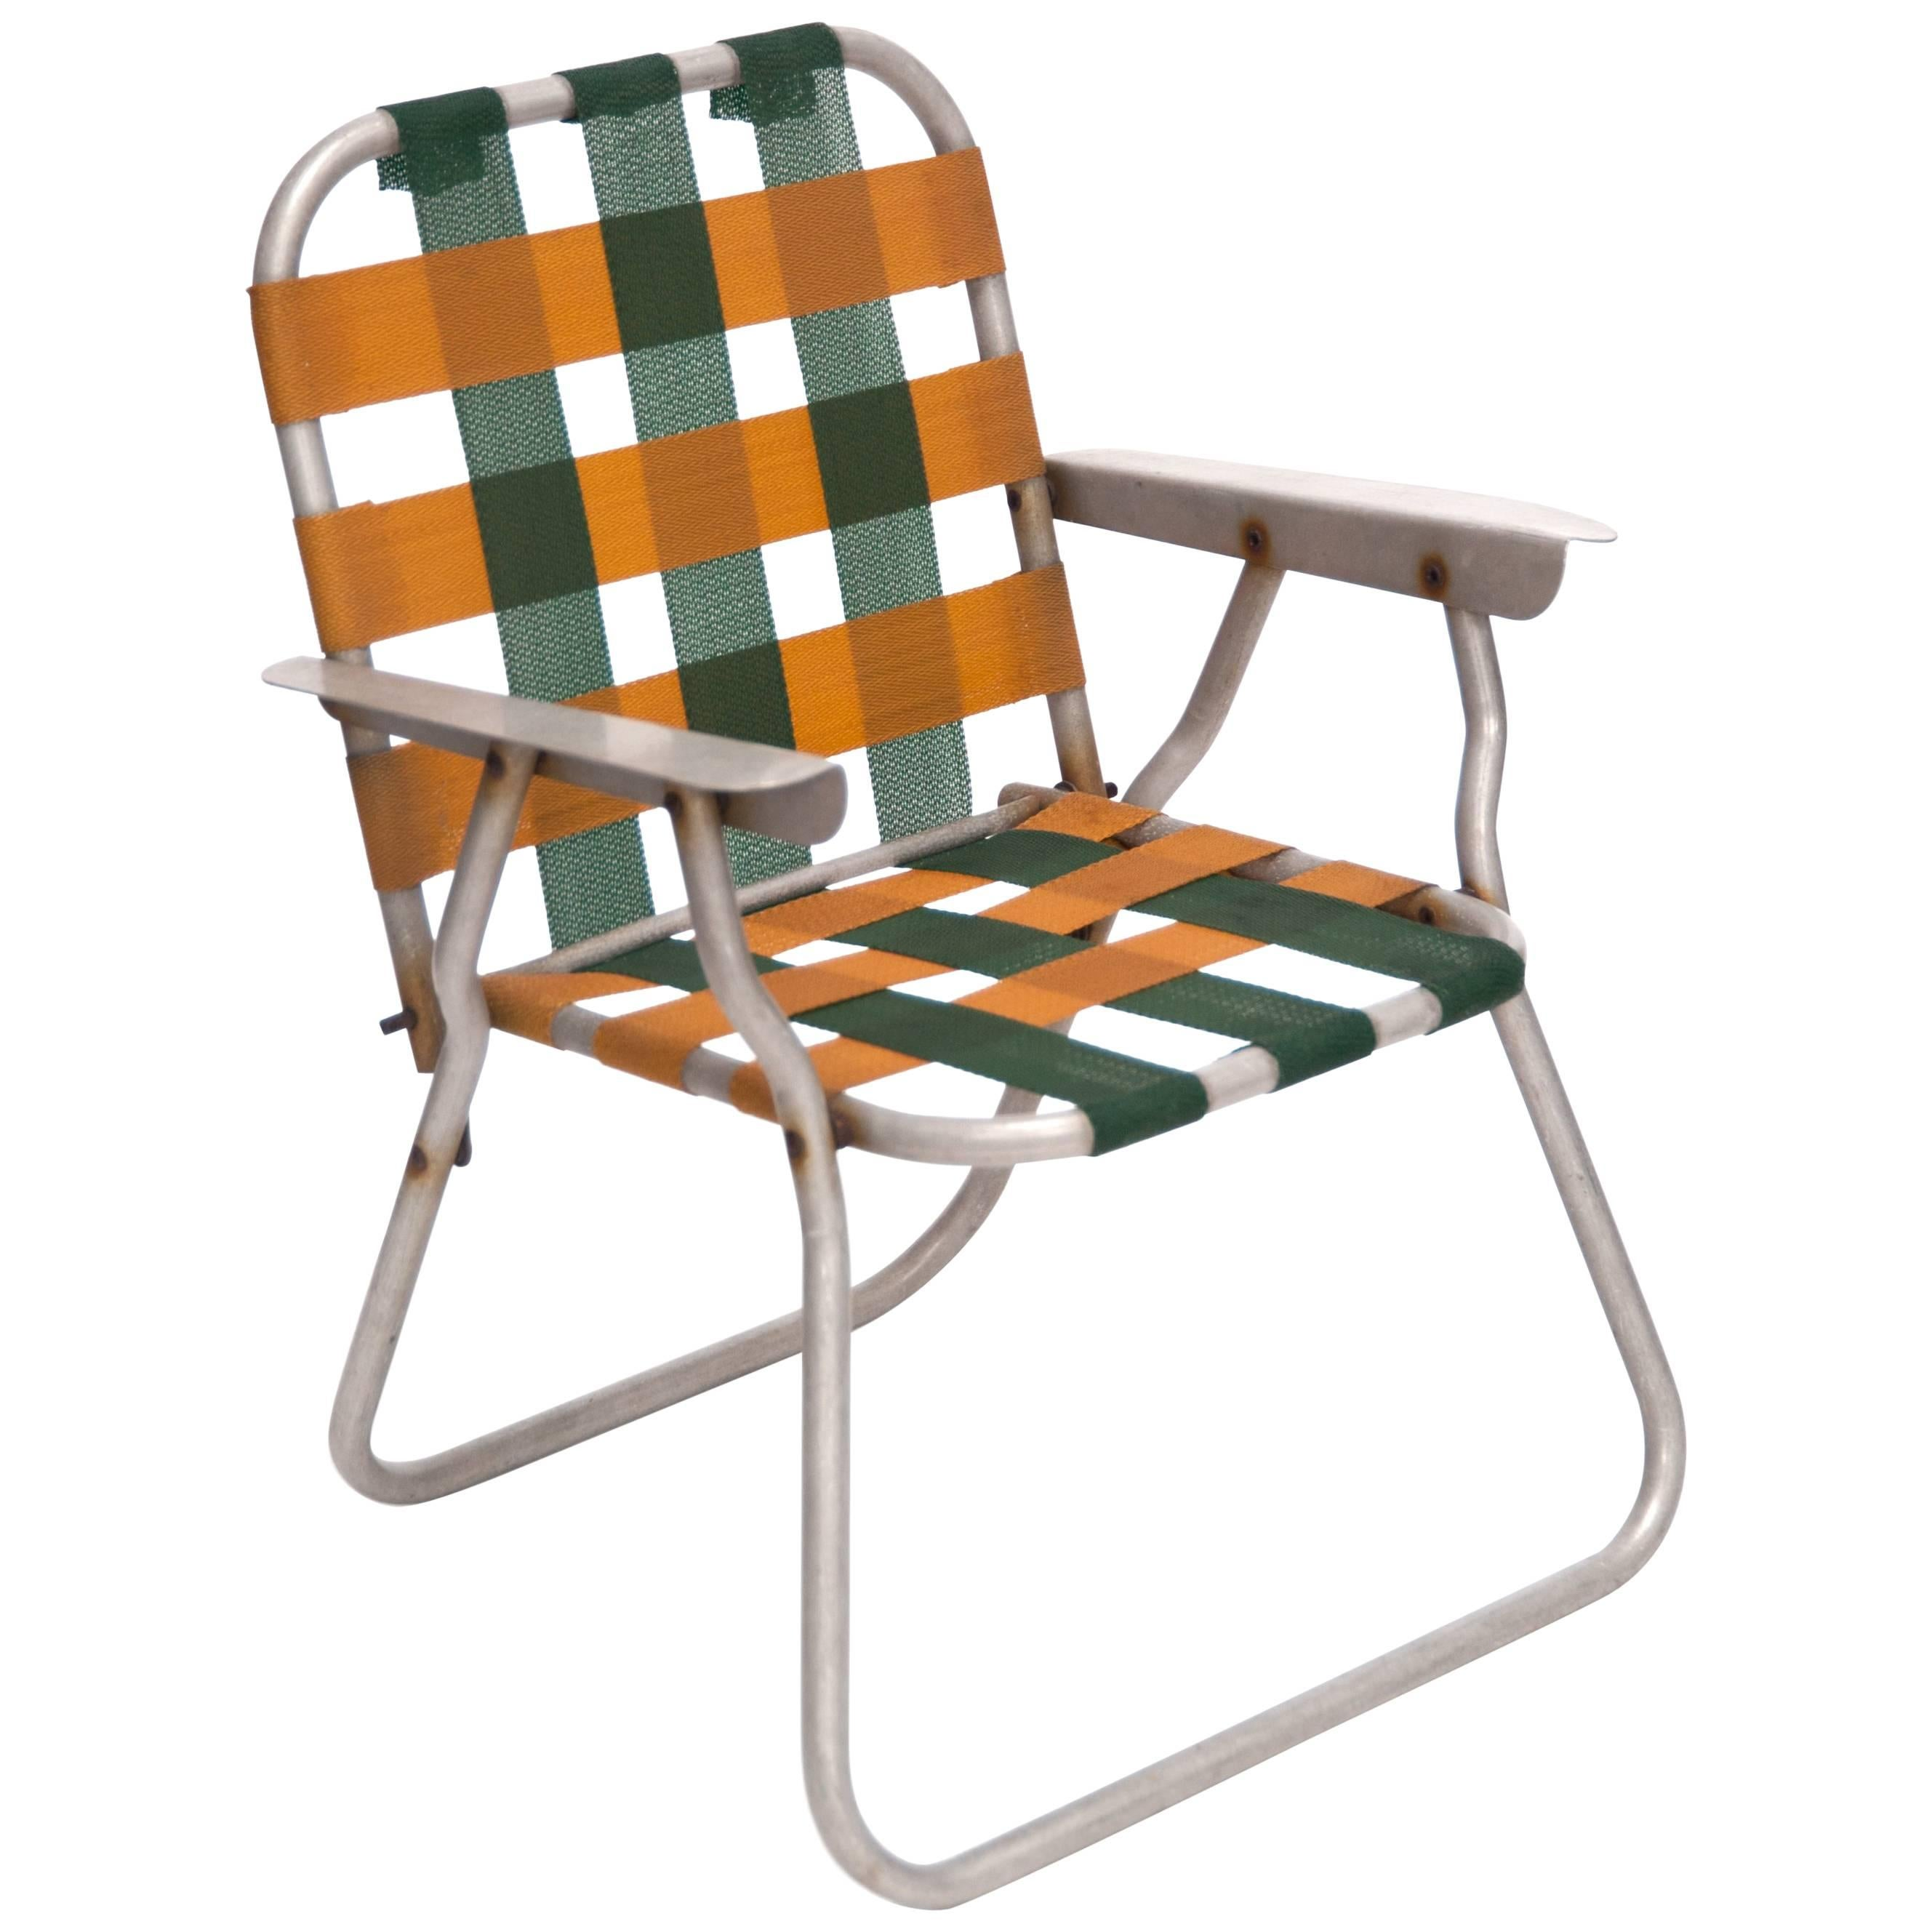 Folding Child Lawn Chair, Designer Unknown, USA, 1970s For Sale